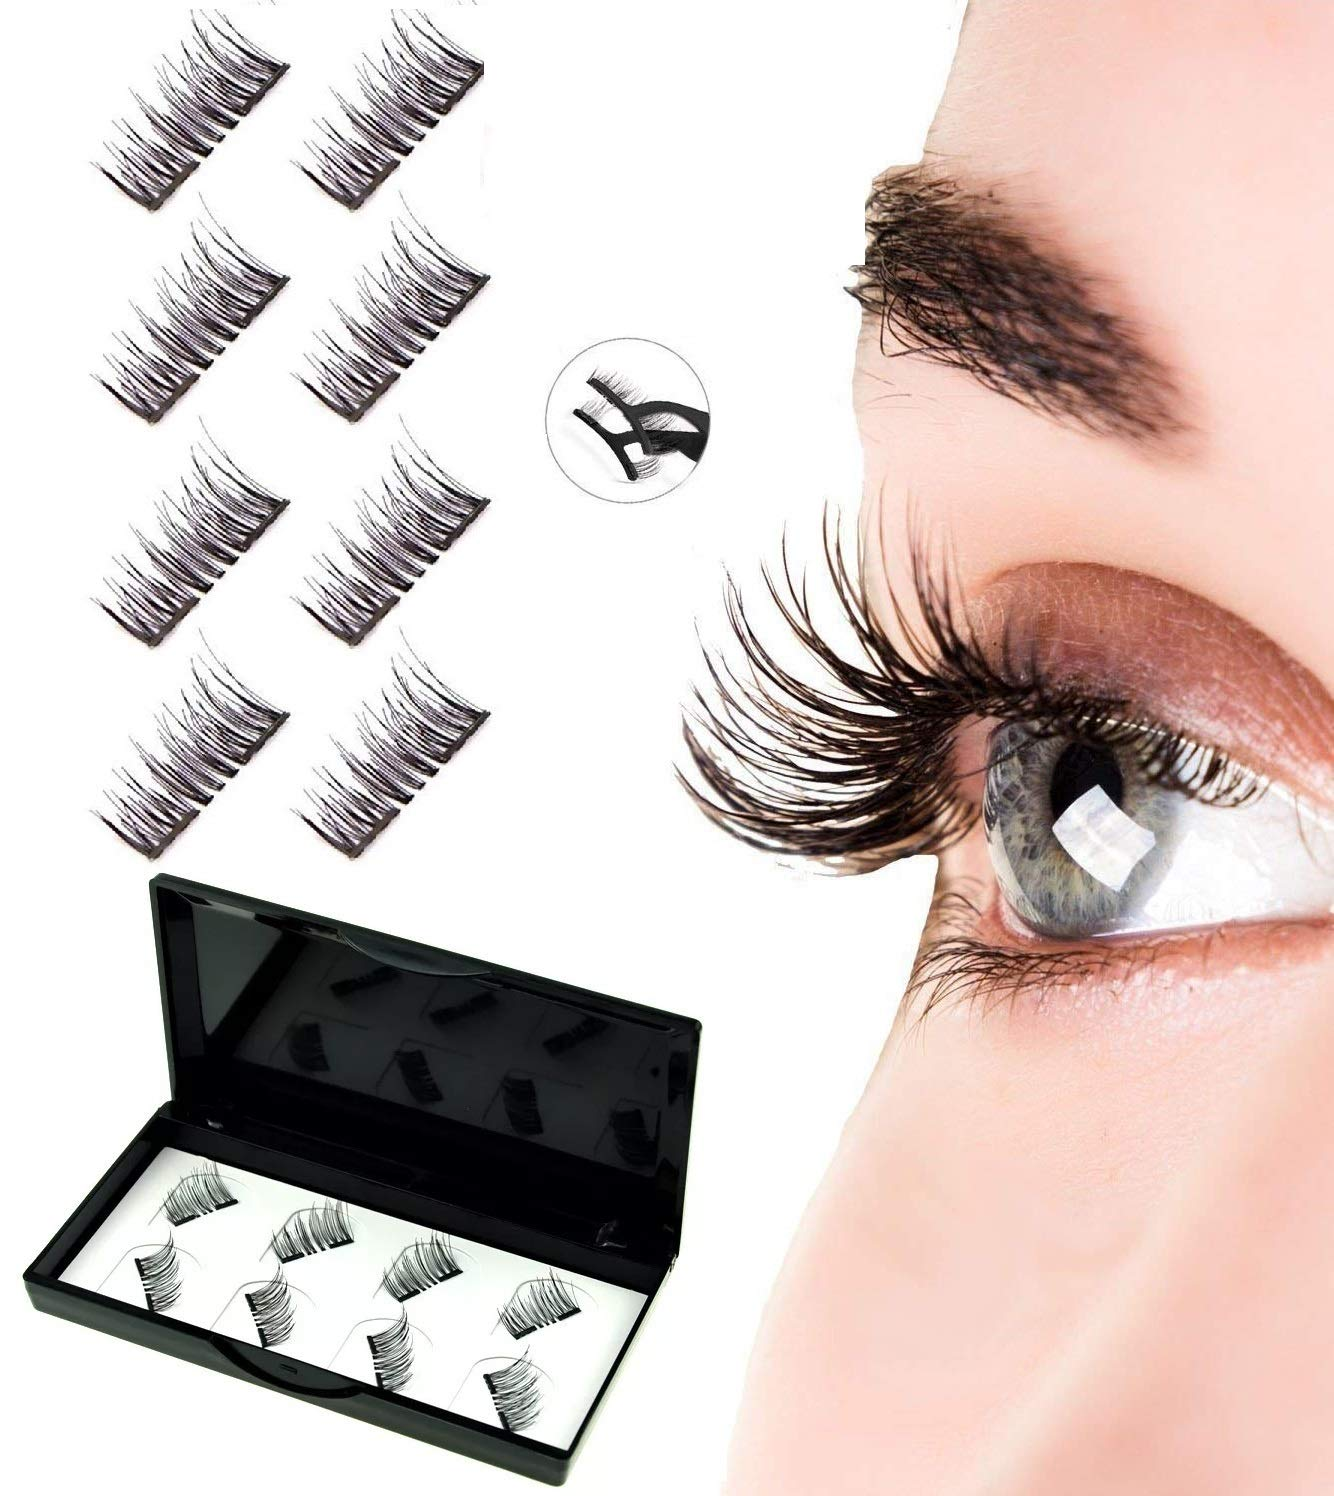 e4f5504e93 Amazon.com : Mikicat 8 PCS Upgraded Dual Magnetic Eyelashes 2 Magnets, Best  No Glue False Magnetic Lashes, Reusable Natural Look Lashes with Stainless  Steel ...